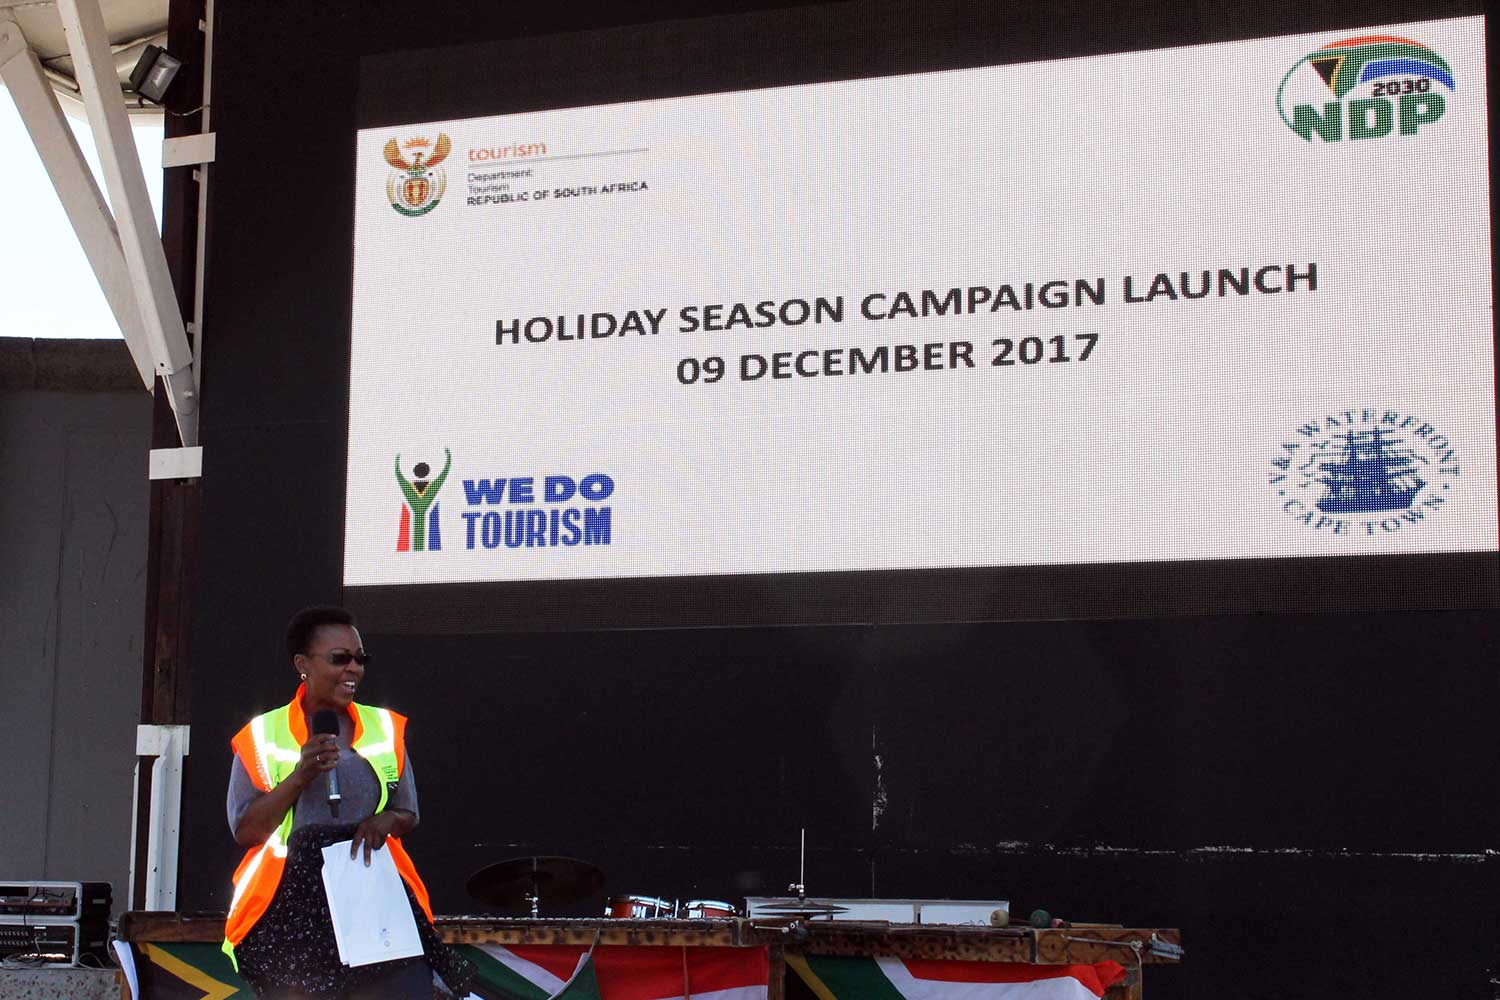 Tourists urged to do tourism safely and responsibly this holiday season